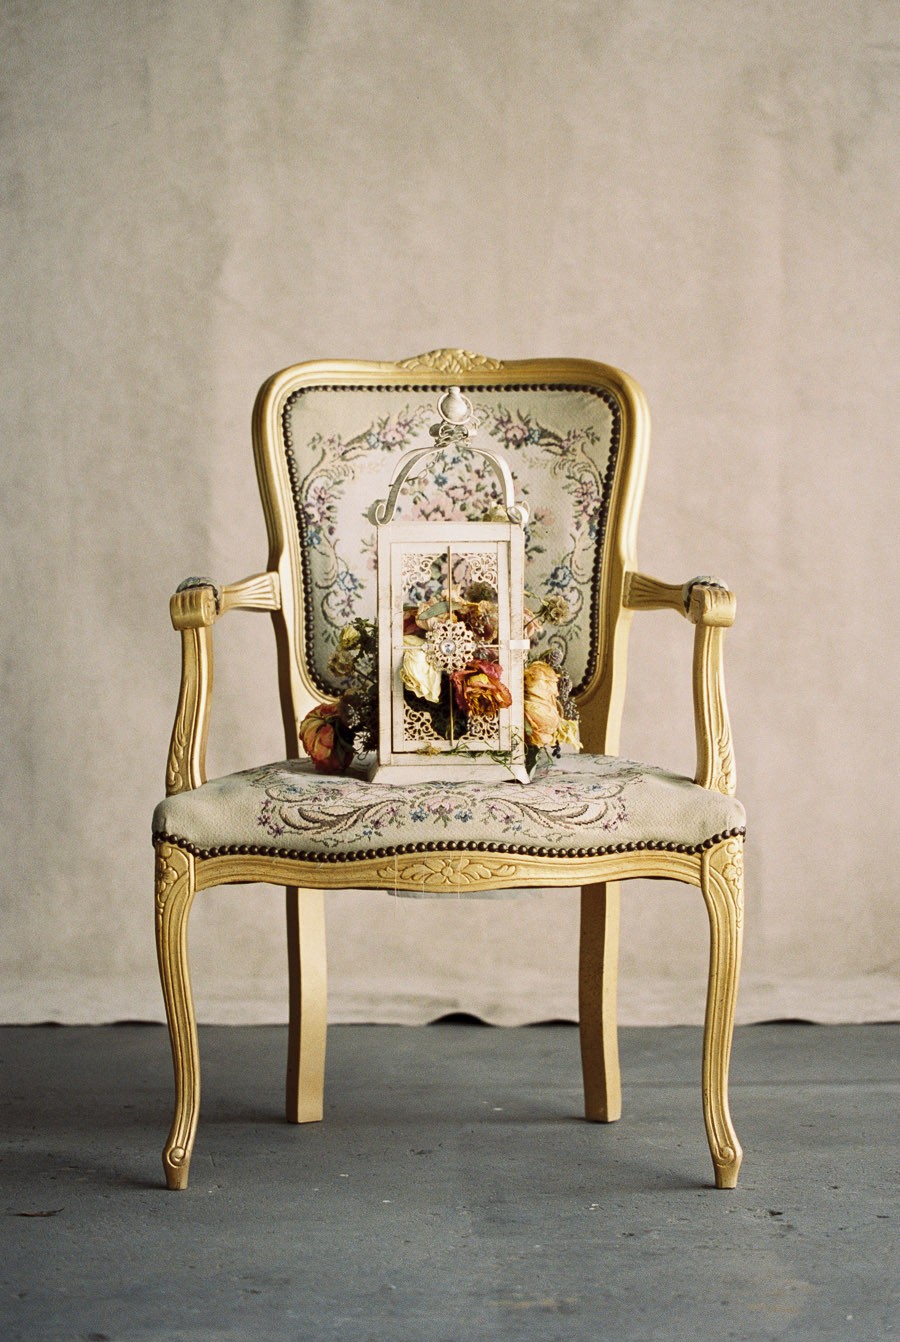 Gold vintage floral chair for wedding | by Lara Lam Photography